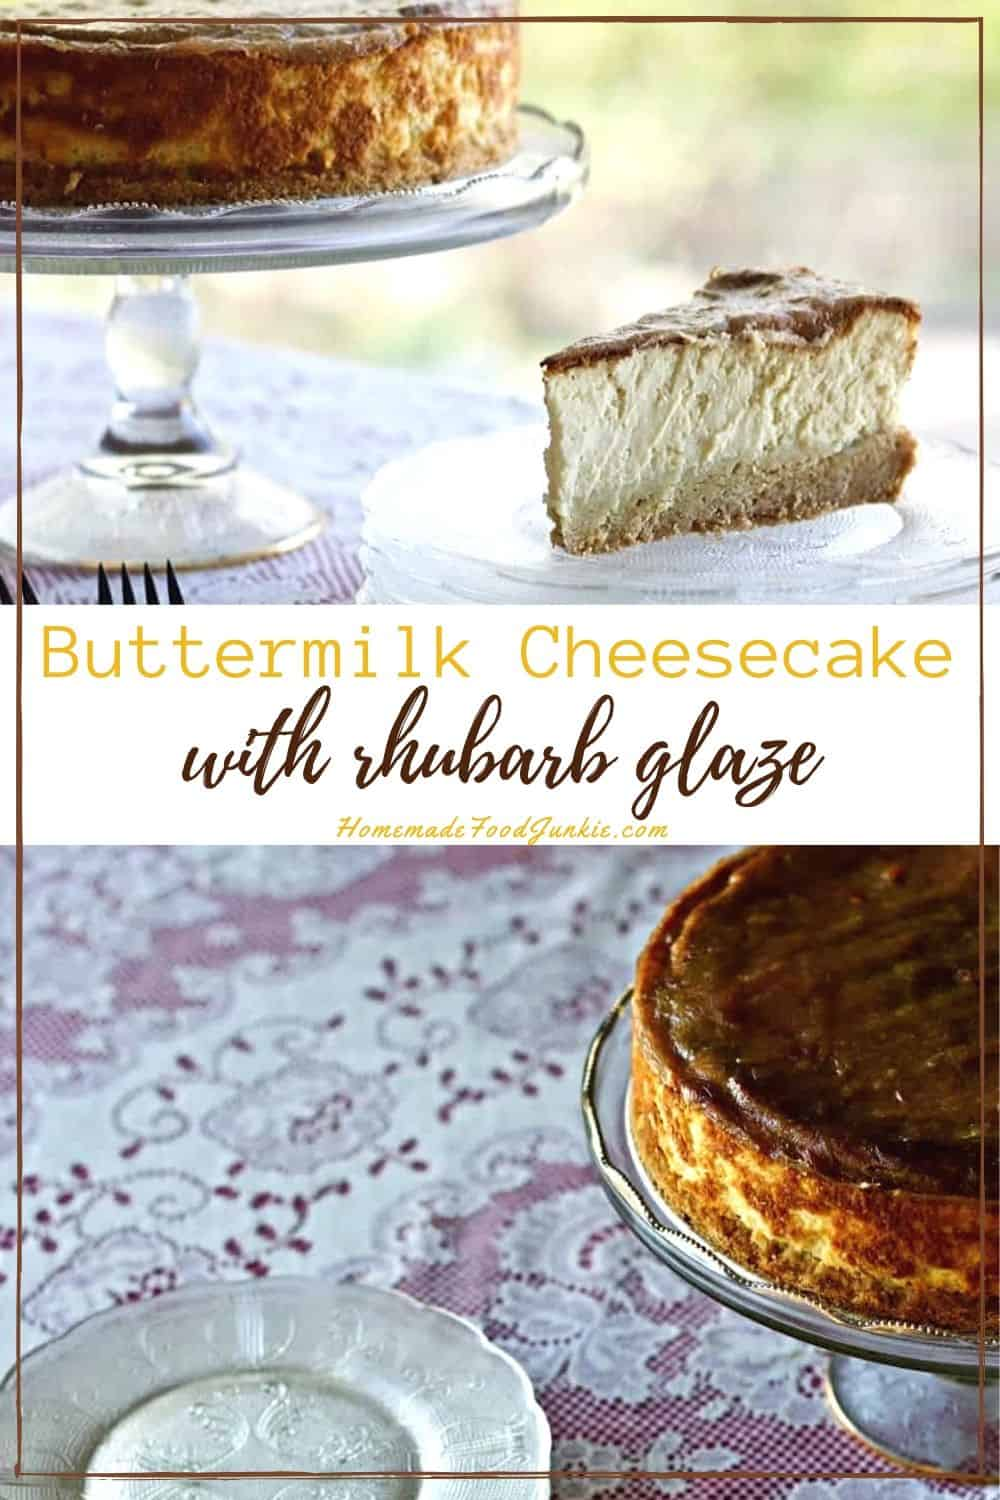 Buttermilk Cheesecake with rhubarb glaze-pin image